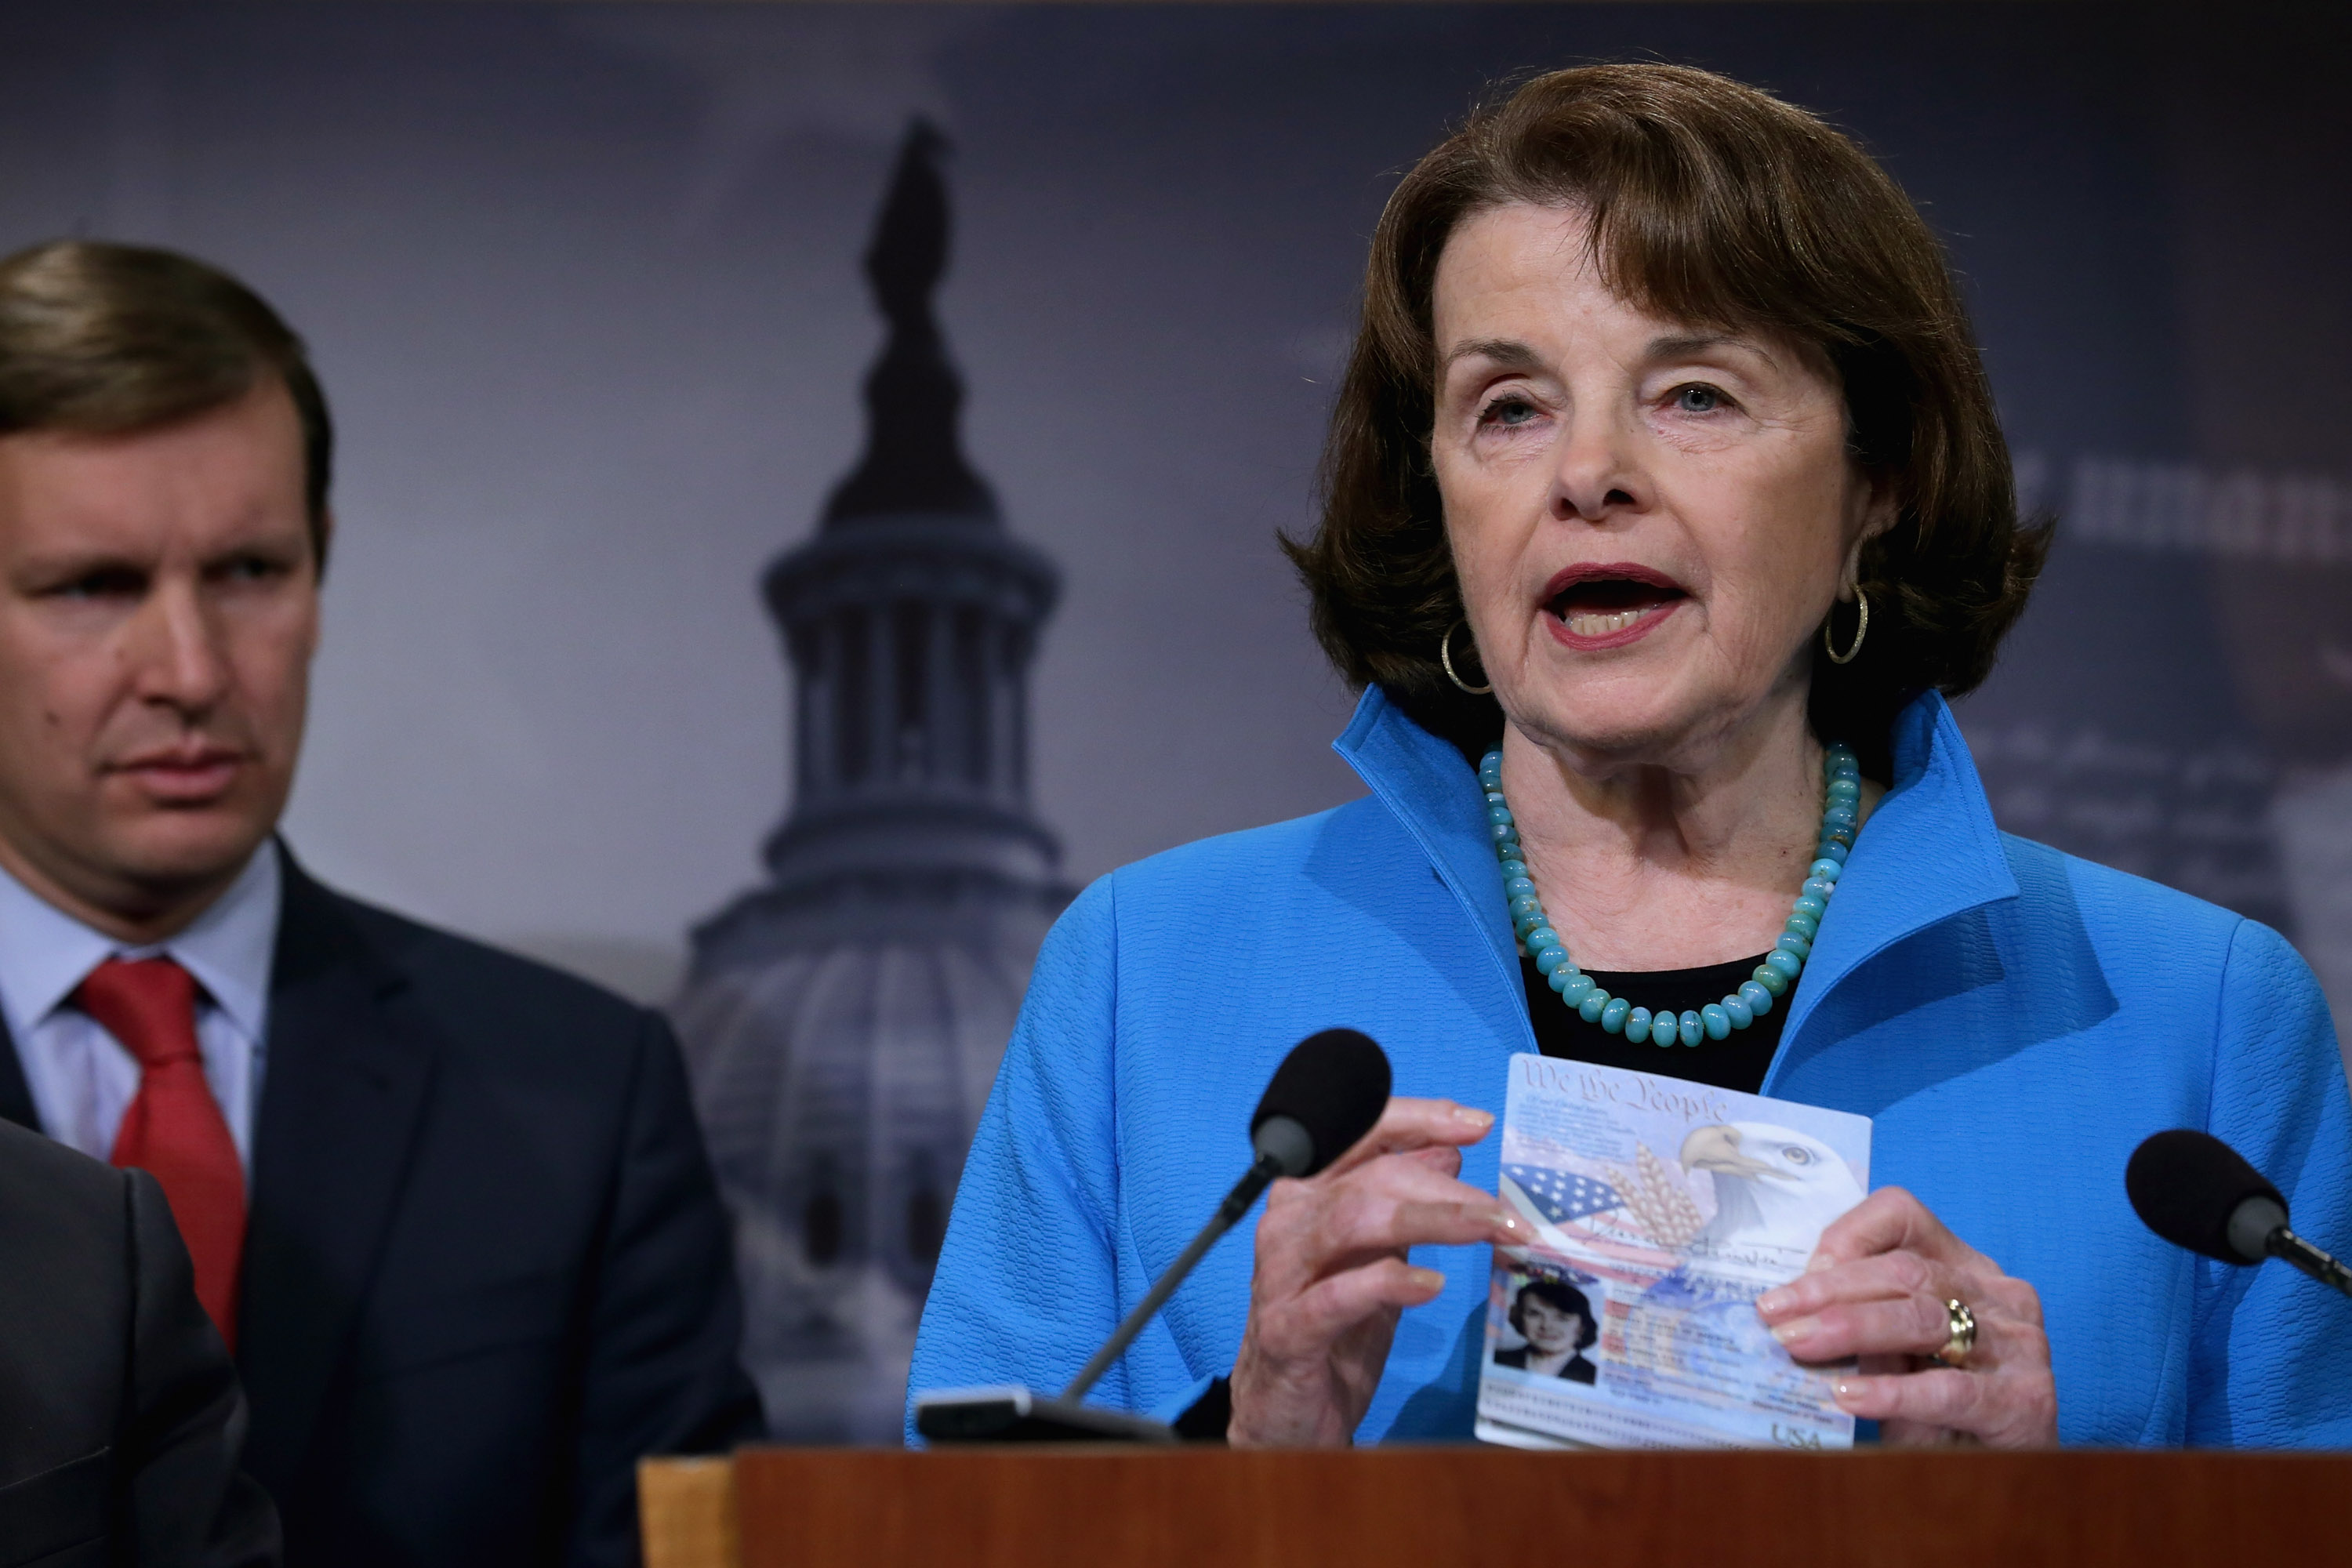 Senate Select Committee on Intelligence ranking member Sen. Dianne Feinstein (D-CA) (R) holds up her passport during a news conference about Democratic legislative proposals in the wake of last week's terror attacks in Paris with Sen. Chris Murphy (D-CT) at the U.S. Capitol November 19, 2015 in Washington, DC.